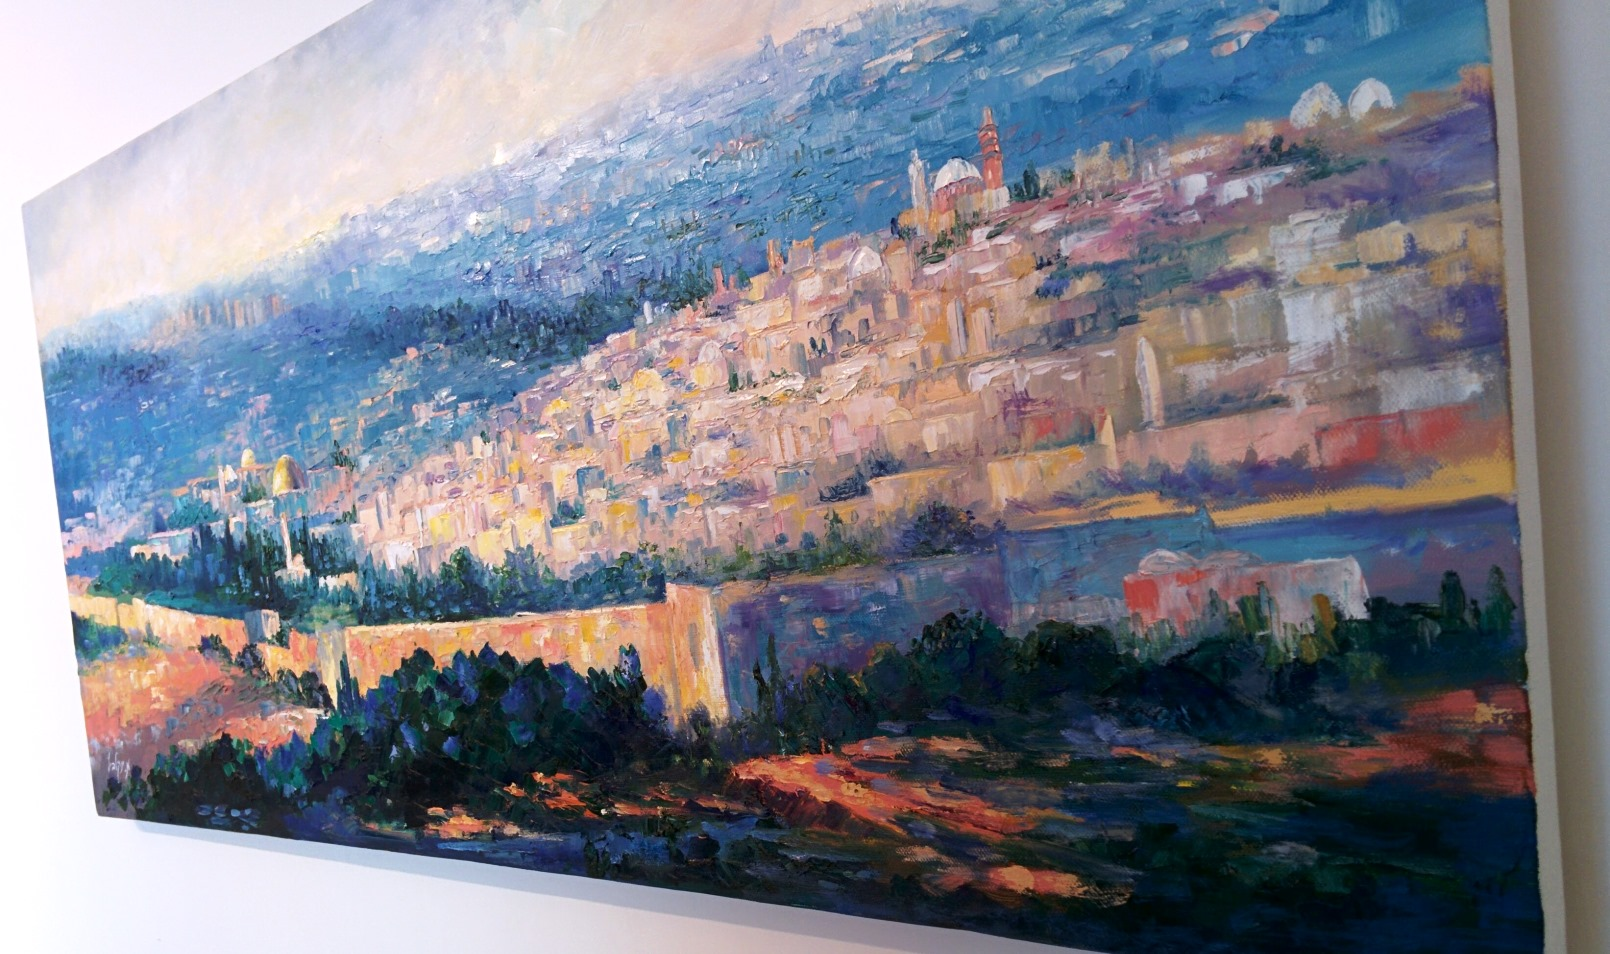 One of Menucha Yankelevitch's interpretations of the view. Photo by Abigail Klein Leichman